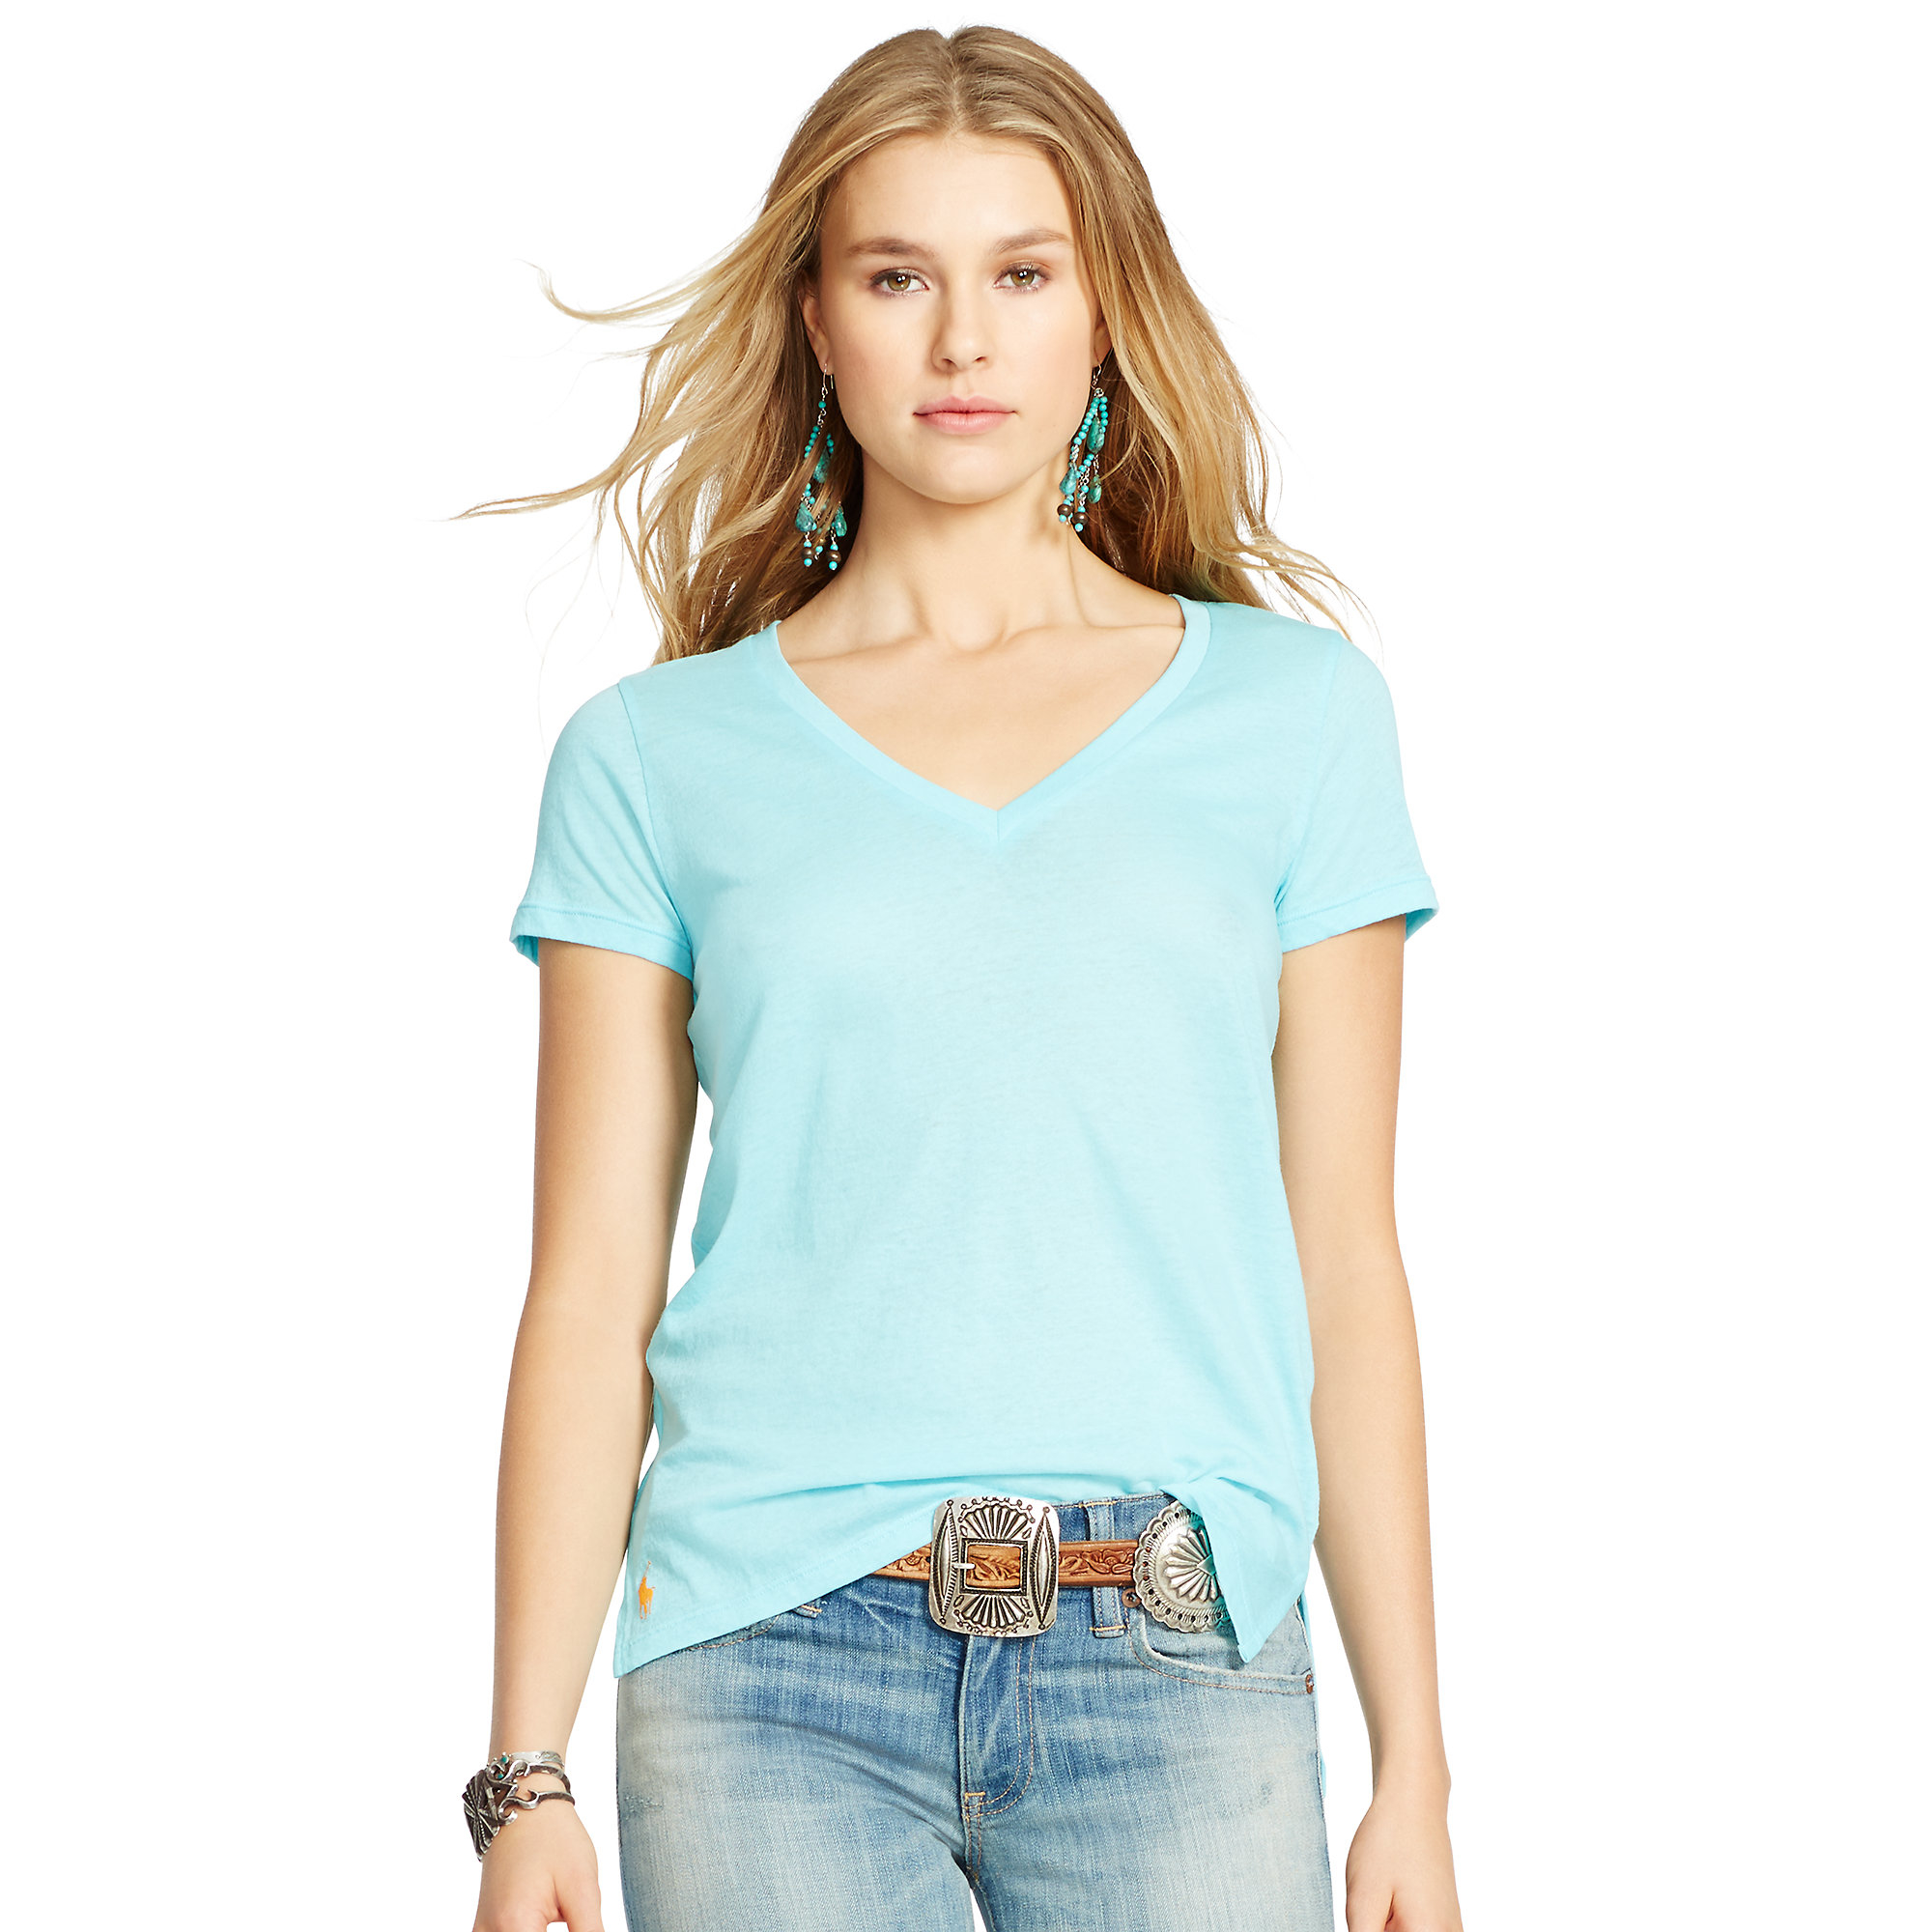 04bd02482 ... official lyst polo ralph lauren cotton jersey v neck tee in blue 65e8f  62c7d